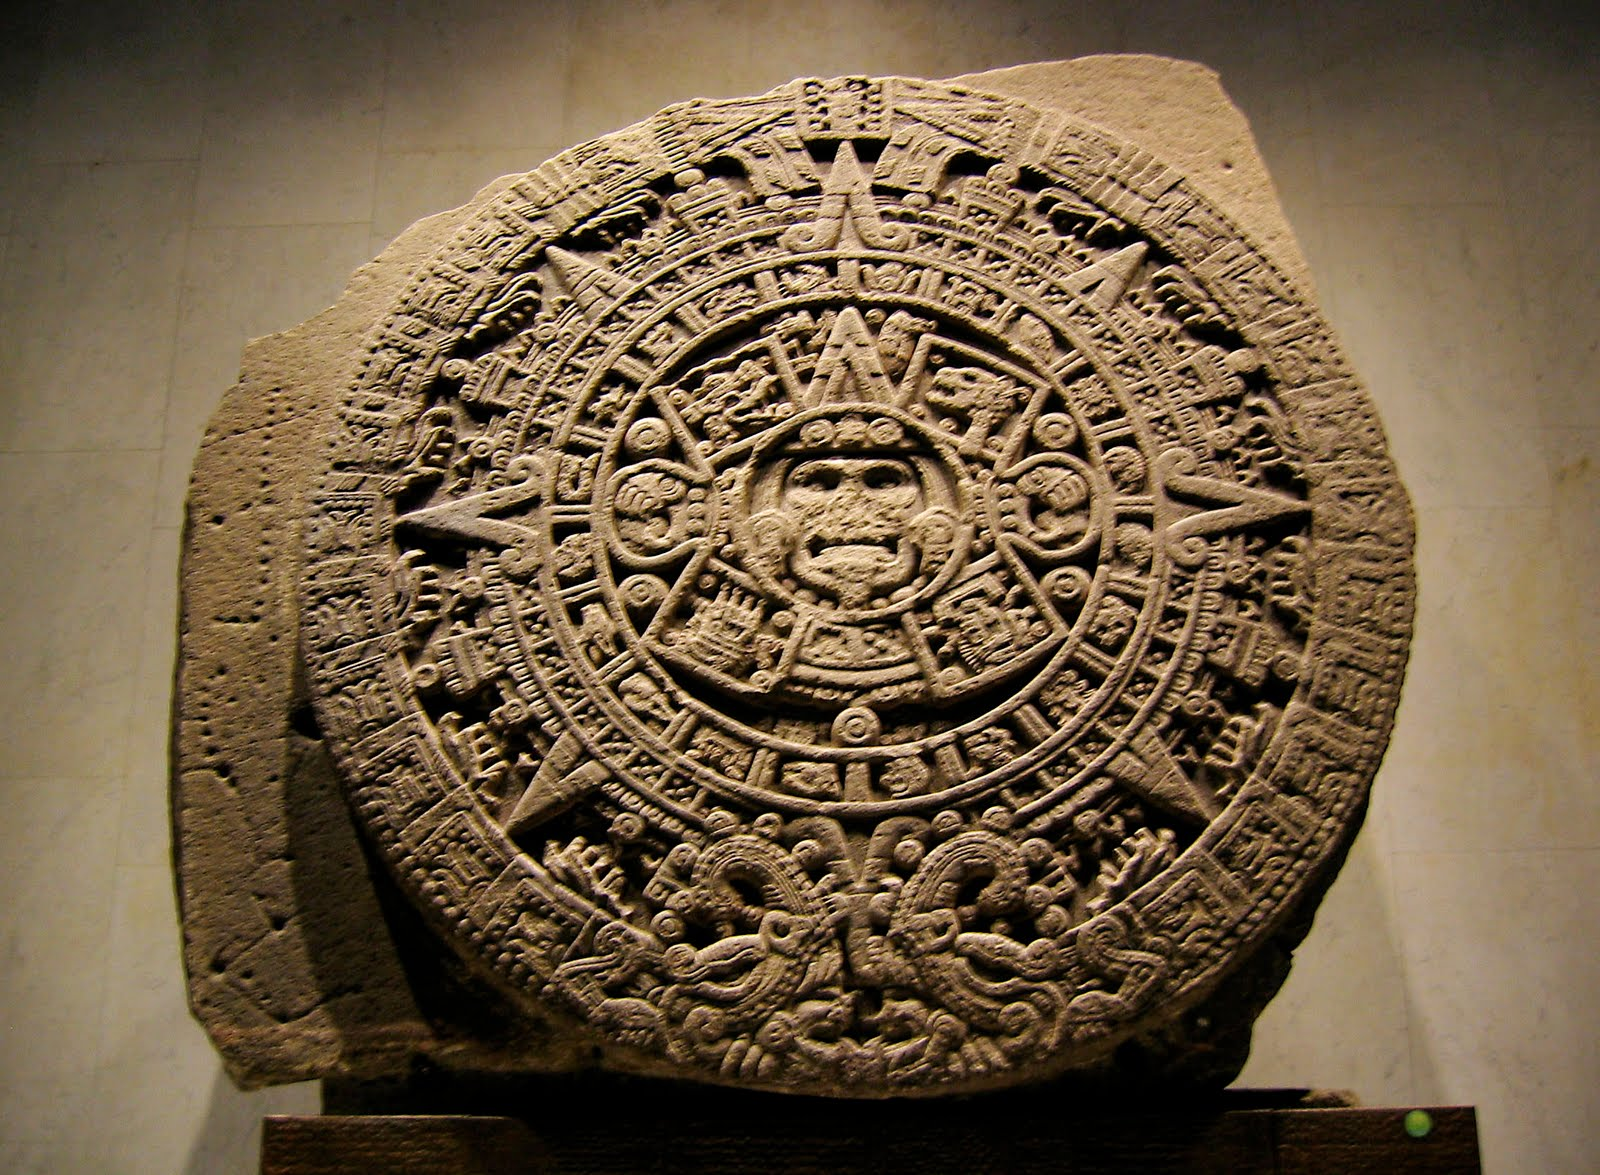 the mayan calendar system In order to accomplish this, i am not going to focus on the tedium or details of  astrology or mayan calendar systems, and so on i will present.